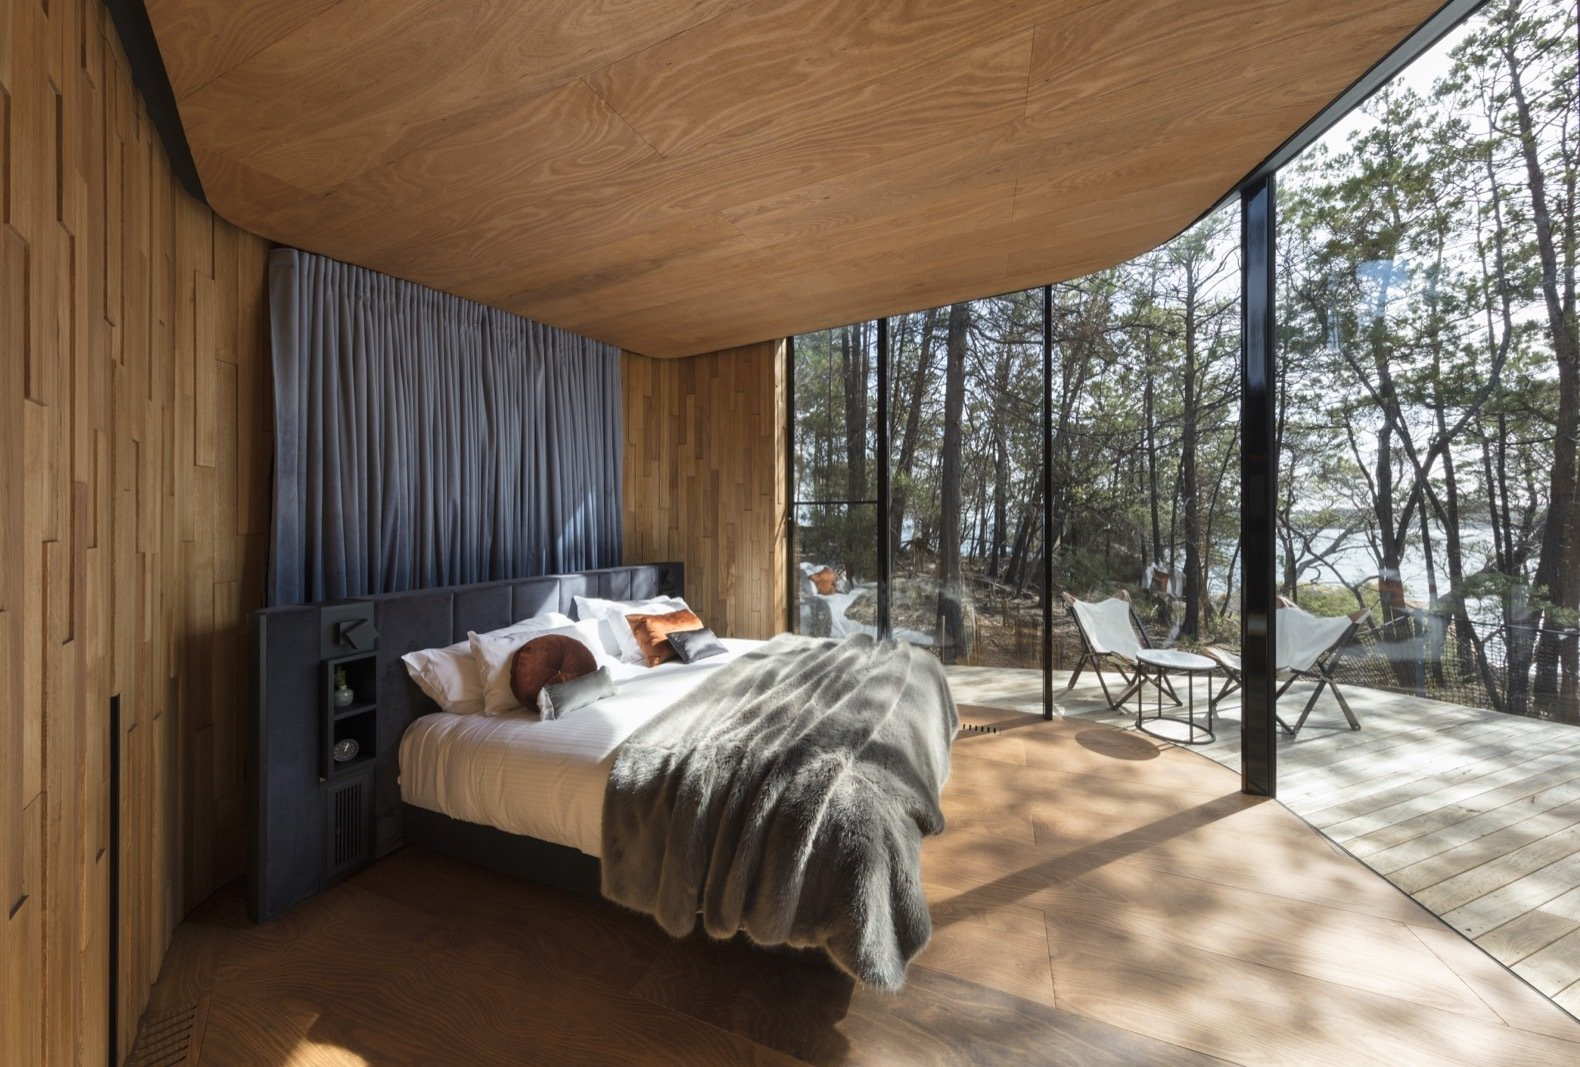 Bedroom, Light Hardwood Floor, Bed, and Night Stands Curved, full-height glazing erases the boundary between indoors and out.   Freycinet Lodge from Escape to the Wilds of Tasmania in These Eco-Minded Pavilions